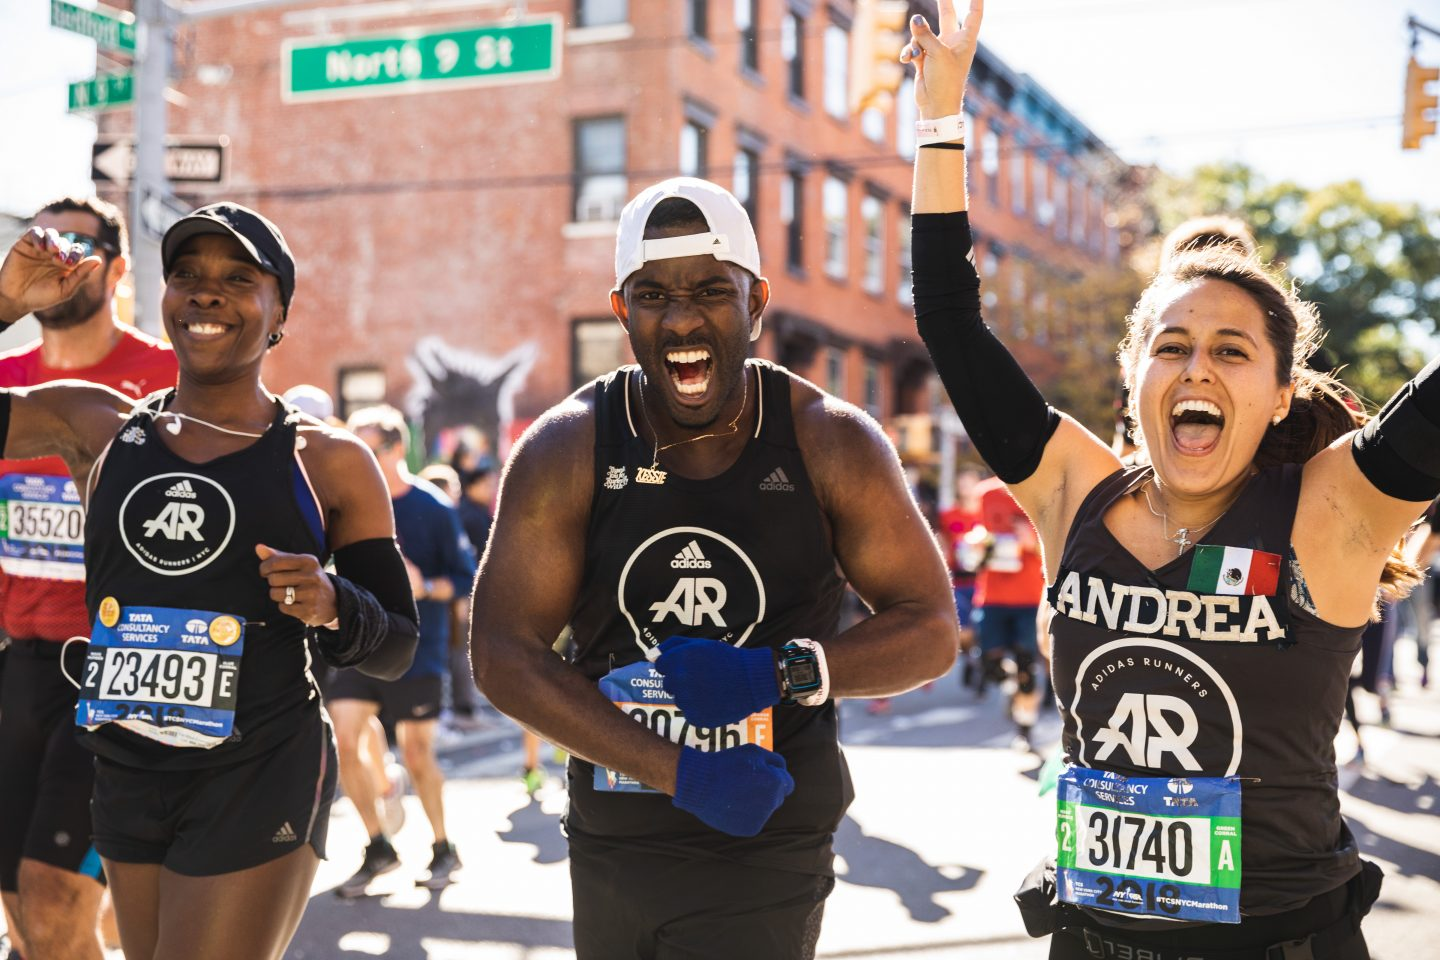 3 adidas runners finishing the New York City Marathon, expressing happiness and pride. Marathon running, mindset, mental strength, dedication, GamePlan A.